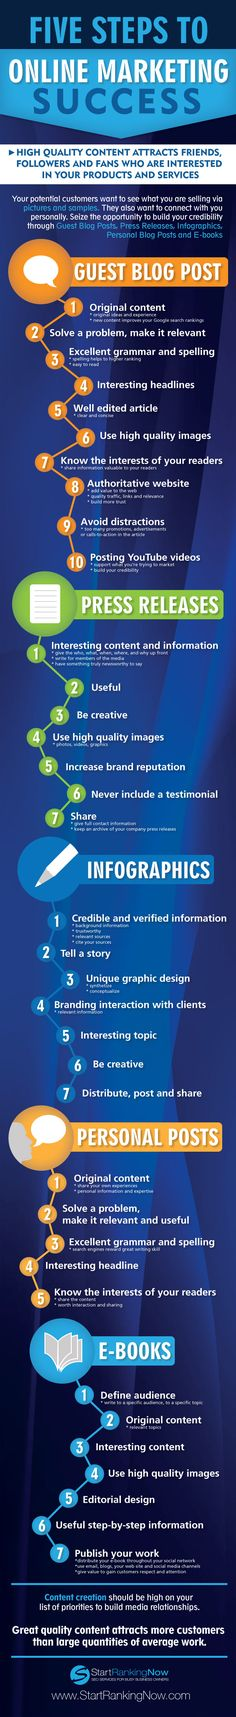 5 steps to online marketing success | #infographic #content #marketing